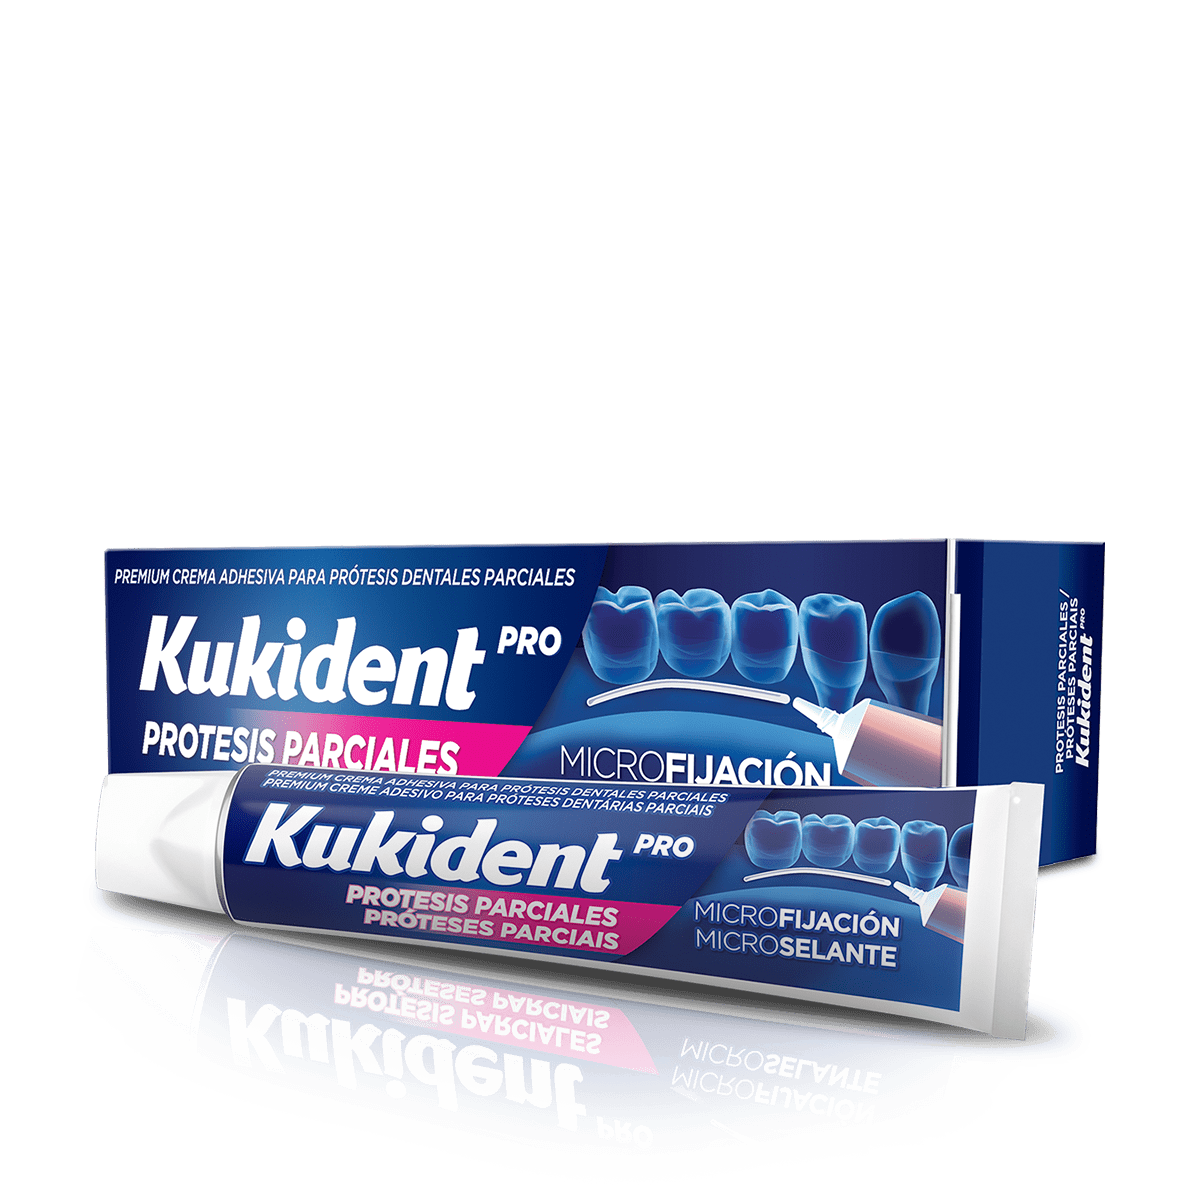 KukidentAdhesive%20Cream%20Pro%20Partials40gIBIn%20%20Out%20of%20Pack200520191200x1200v2